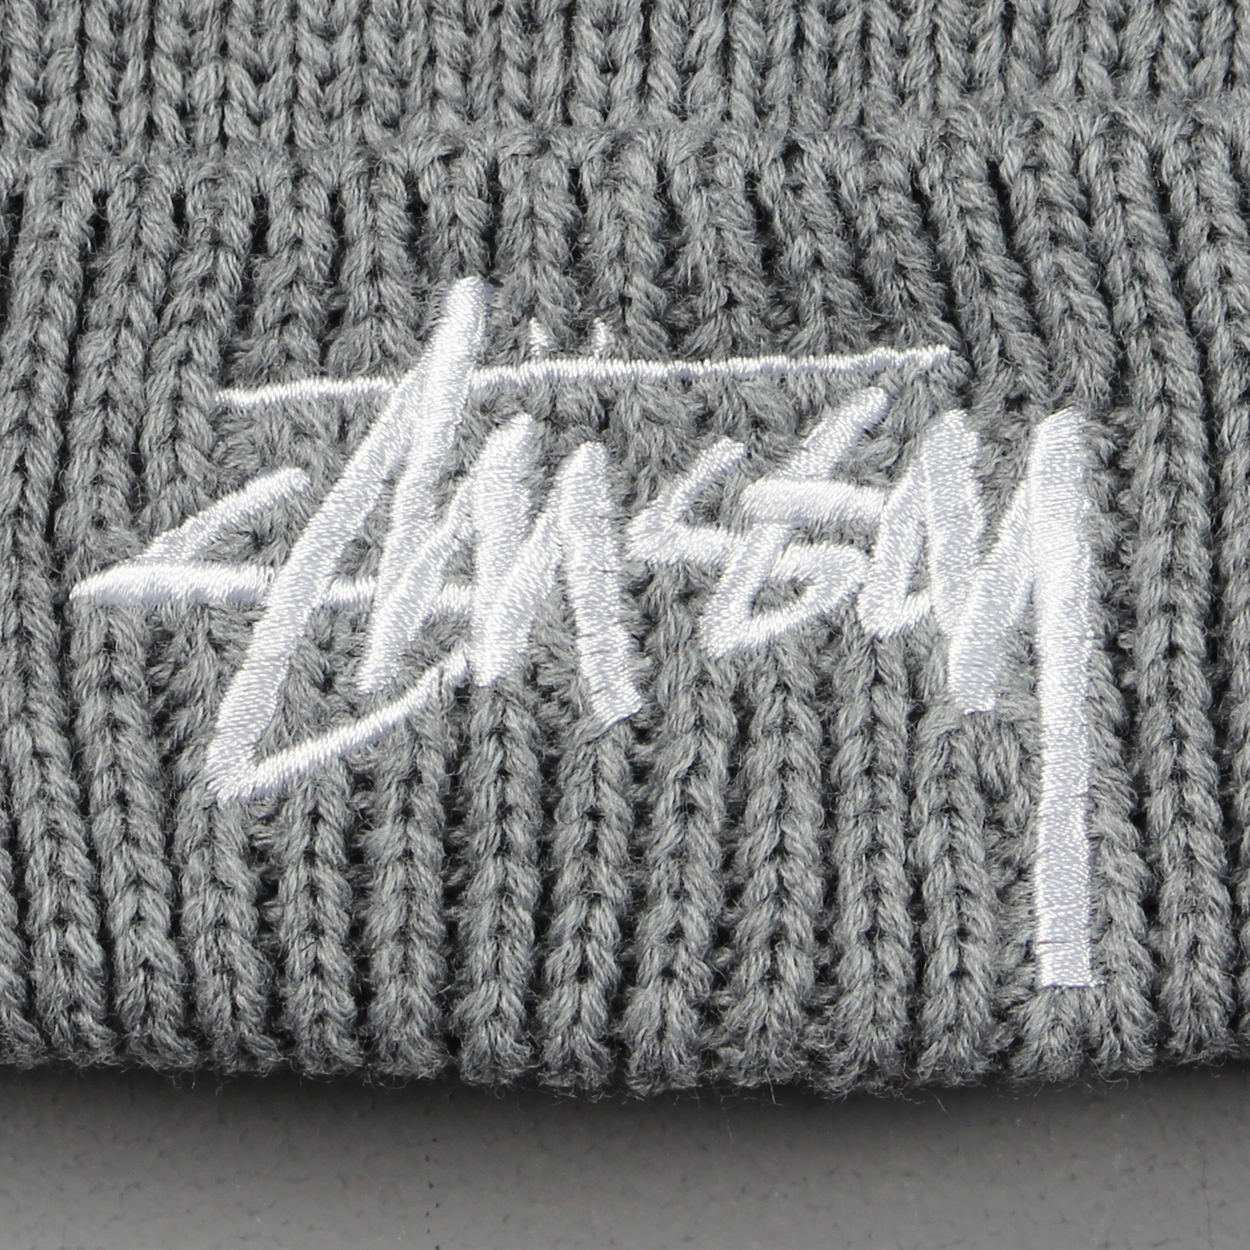 e70bdee717e FA15 Stock from Stussy is arriving quickly with the new Heather Grey Pom  Beanie landing on the scene.